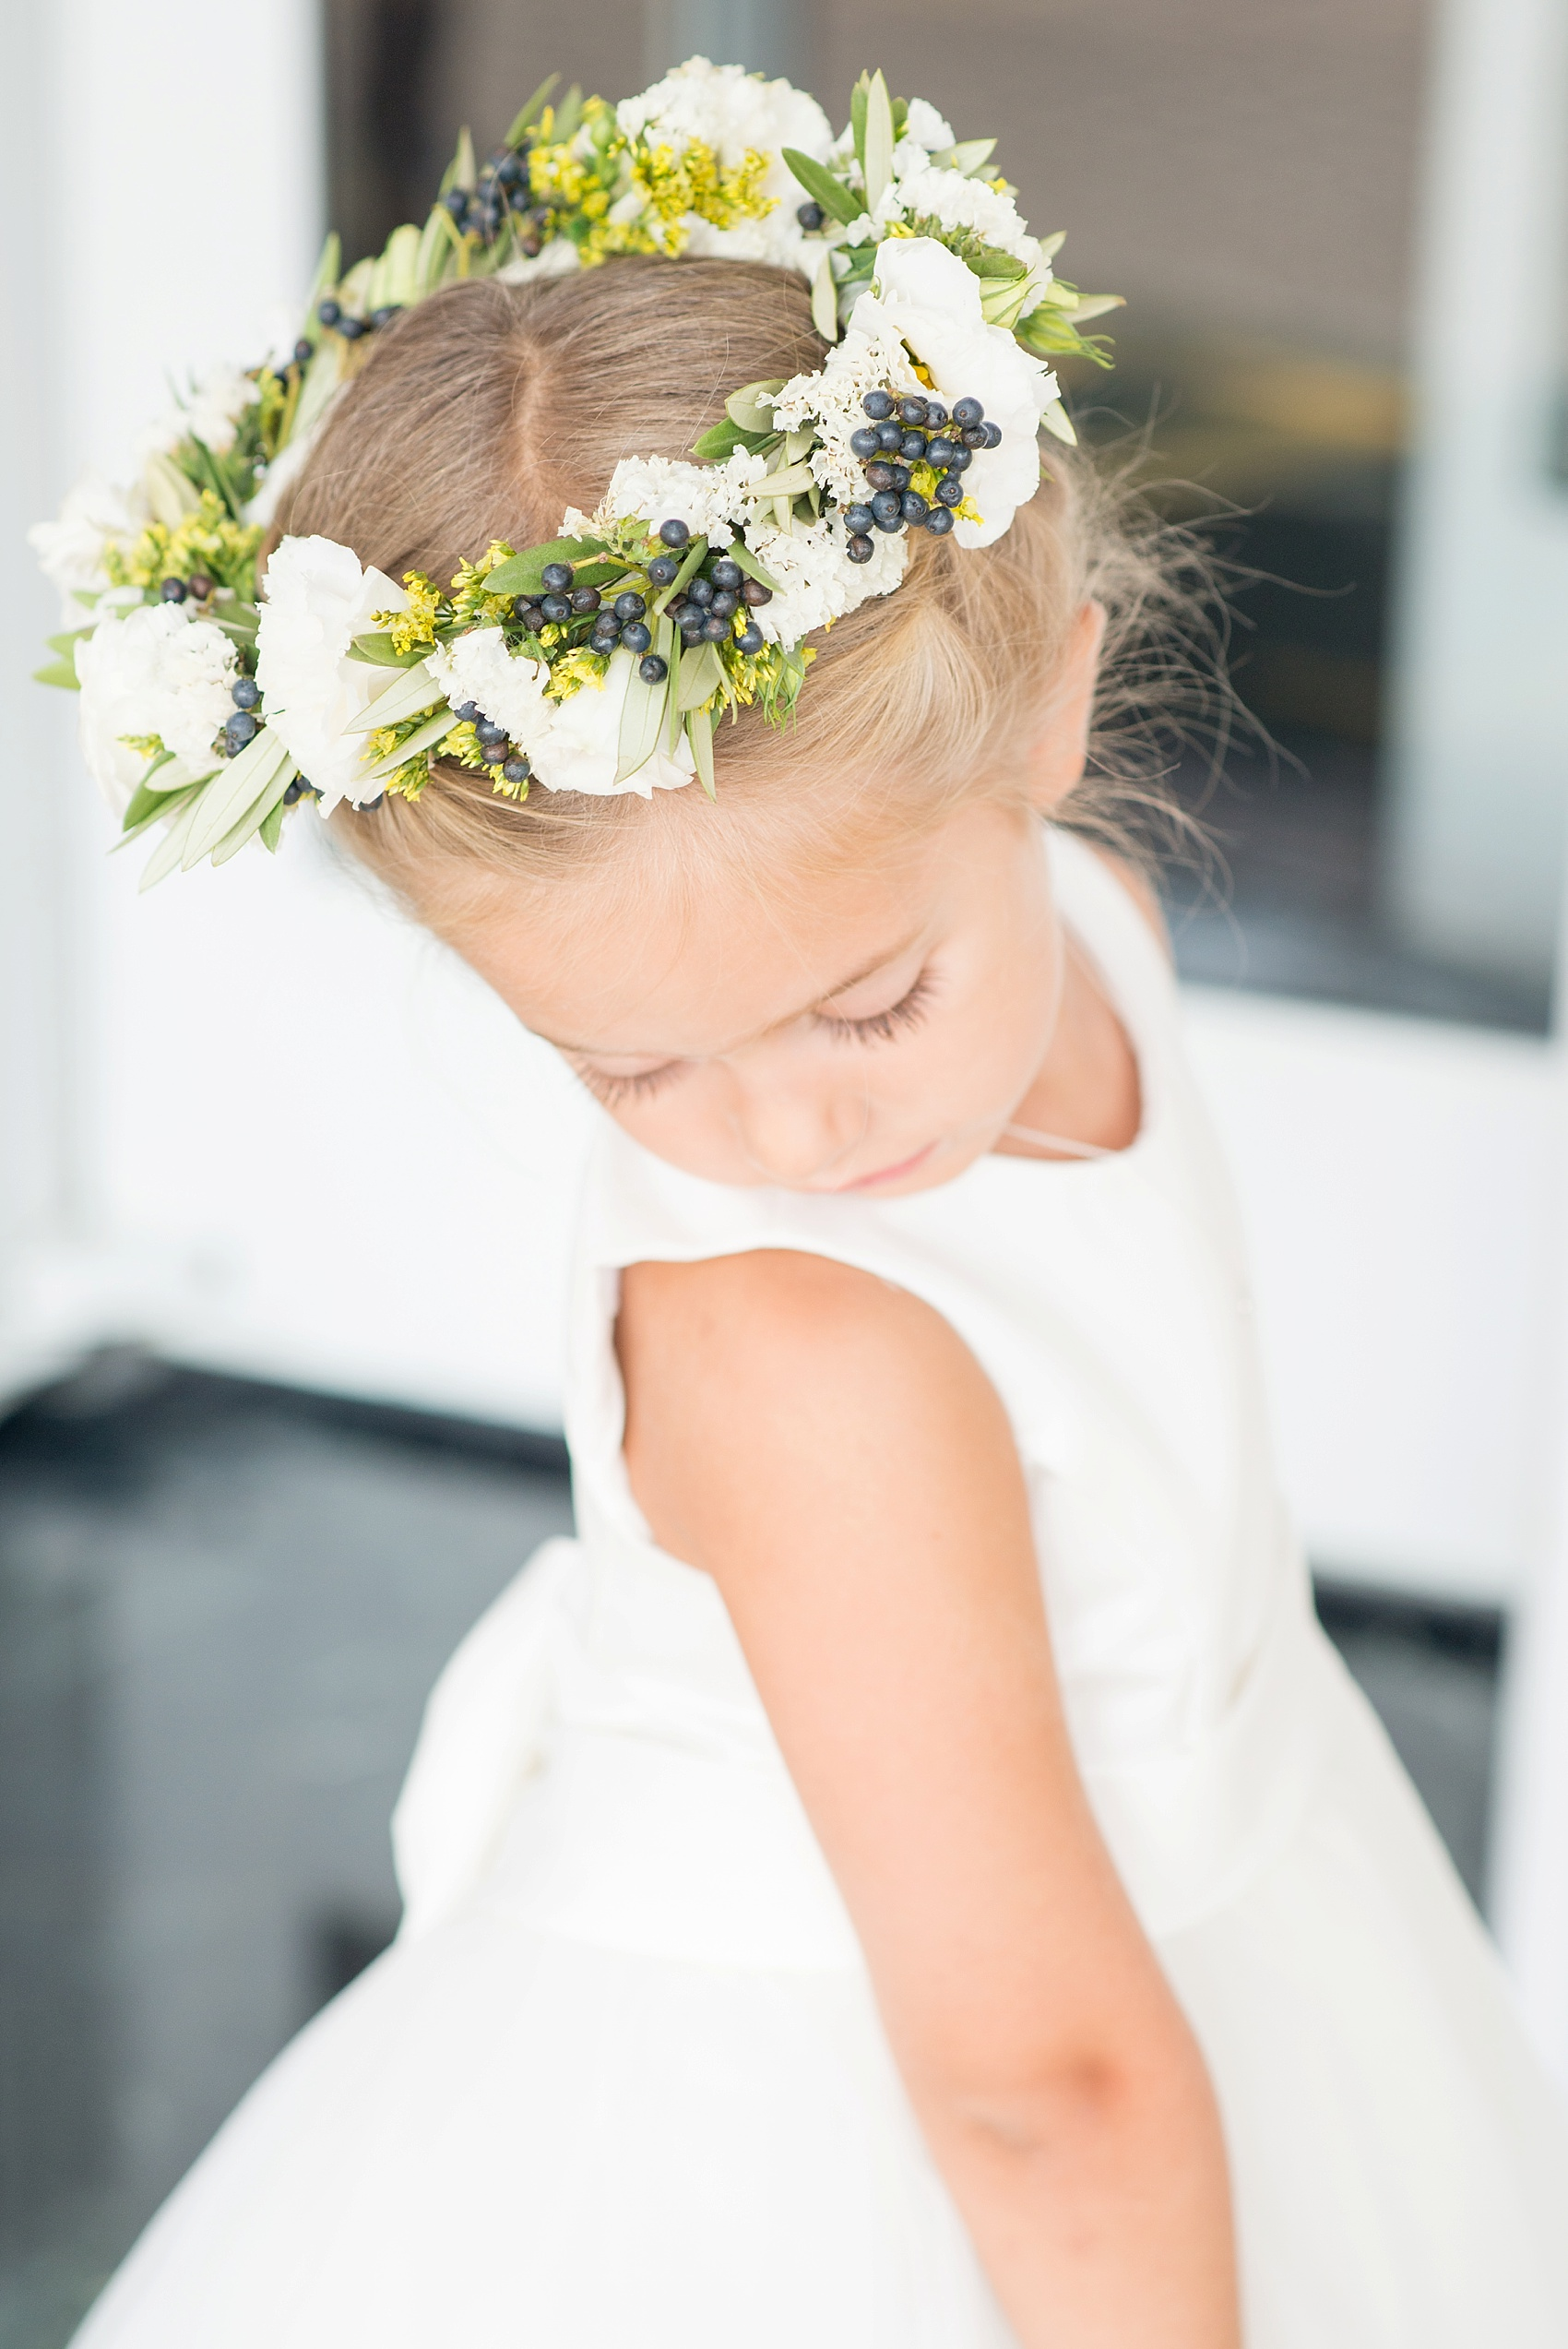 Flower girl in her flower crown of roses, white ranunculus and blue berries in New Jersey for a nautical wedding at the Molly Pitcher Inn. Photo by Mikkel Paige Photography.